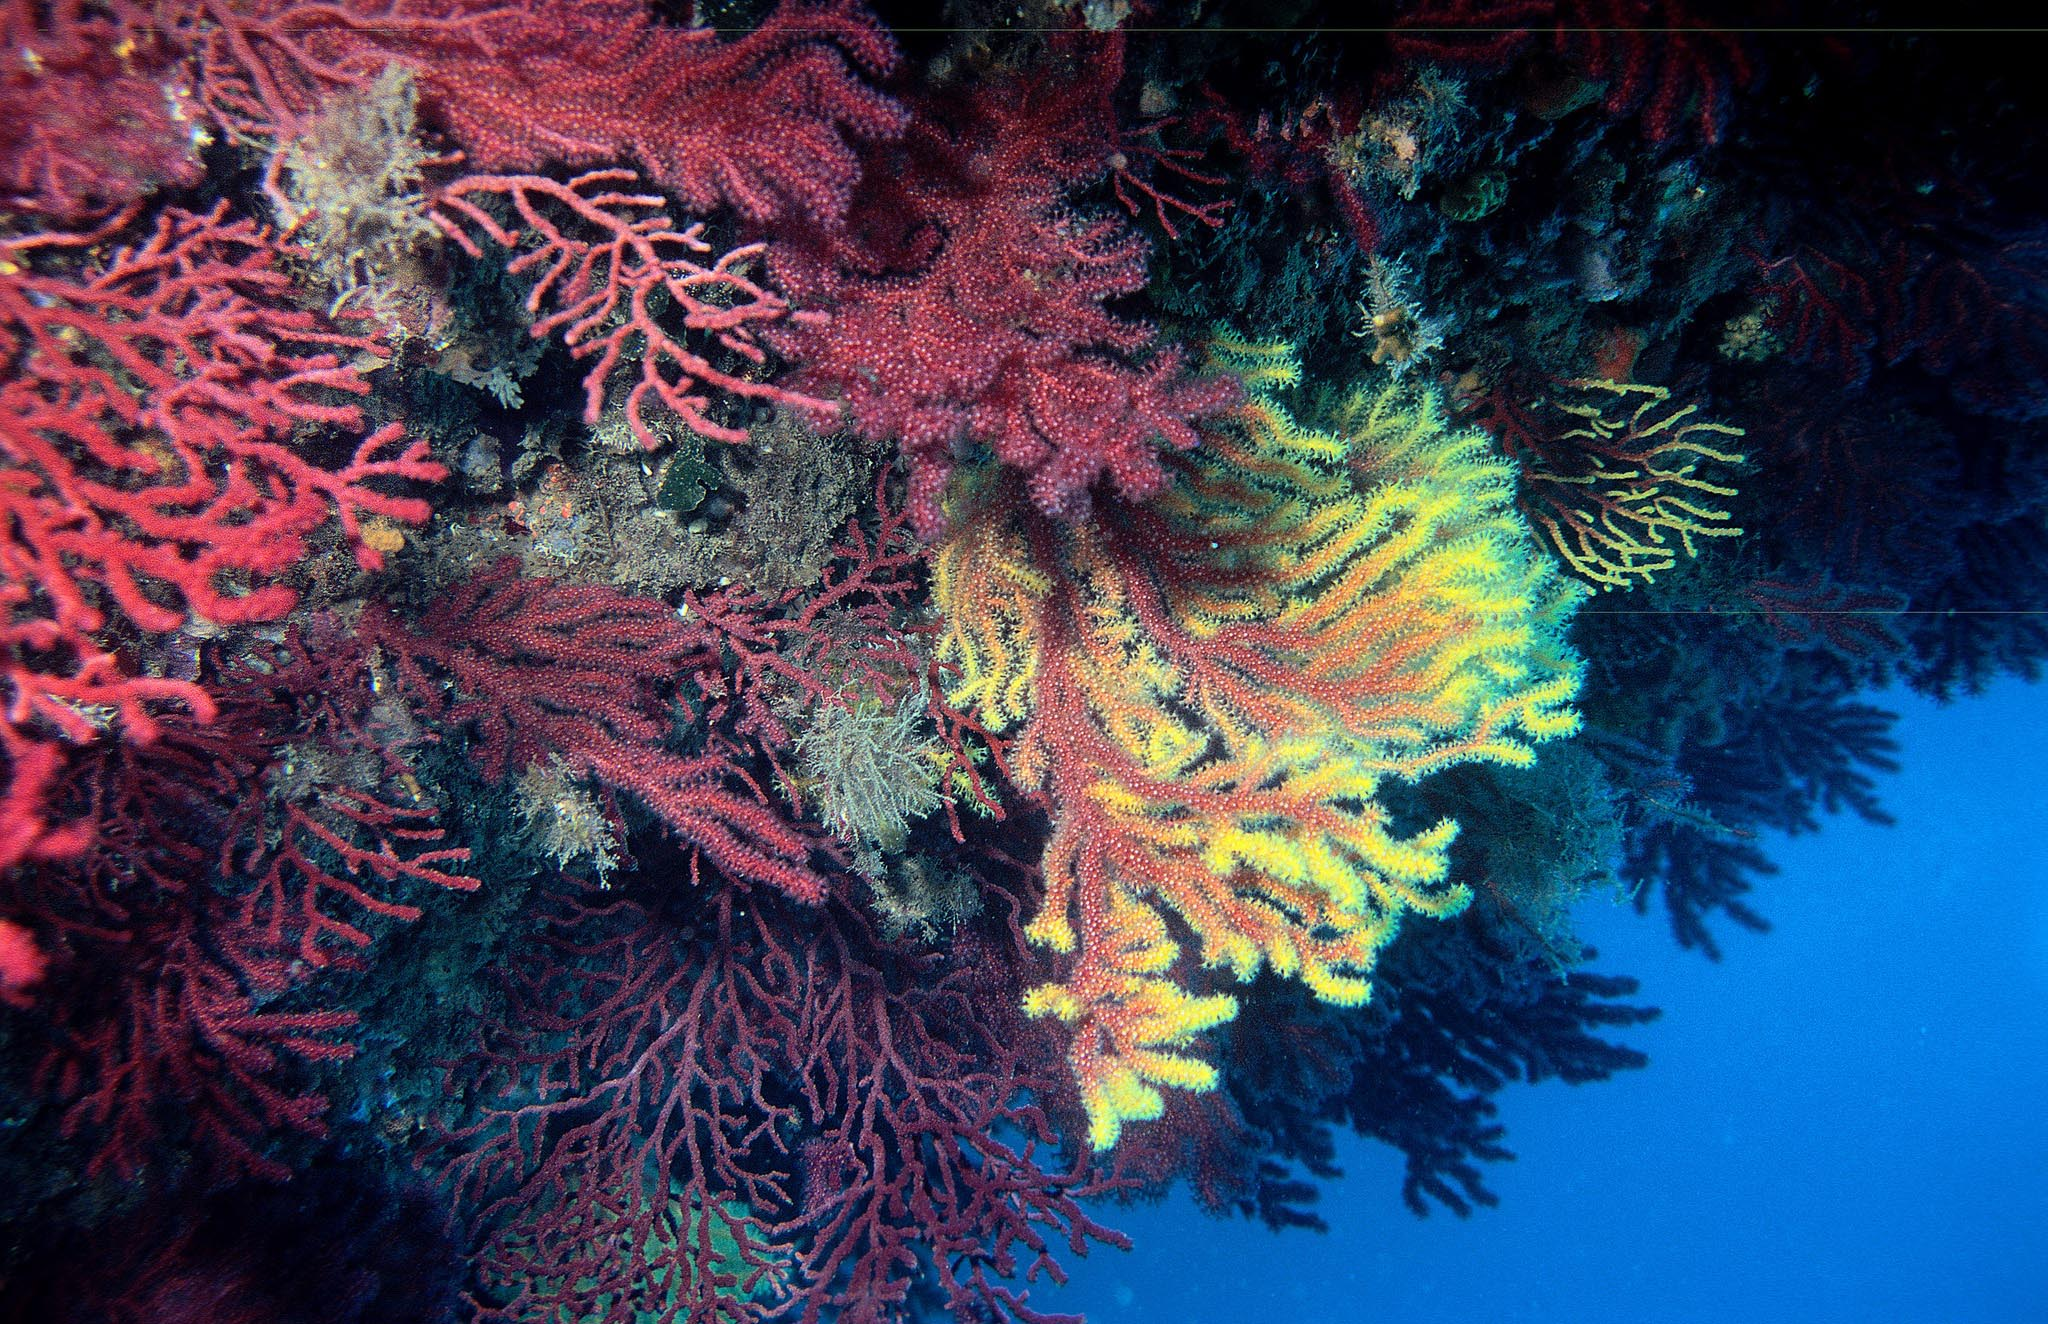 Gorgonians are being reintroduced in hard-bottom habitats in European seas. Image credit - Pxhere